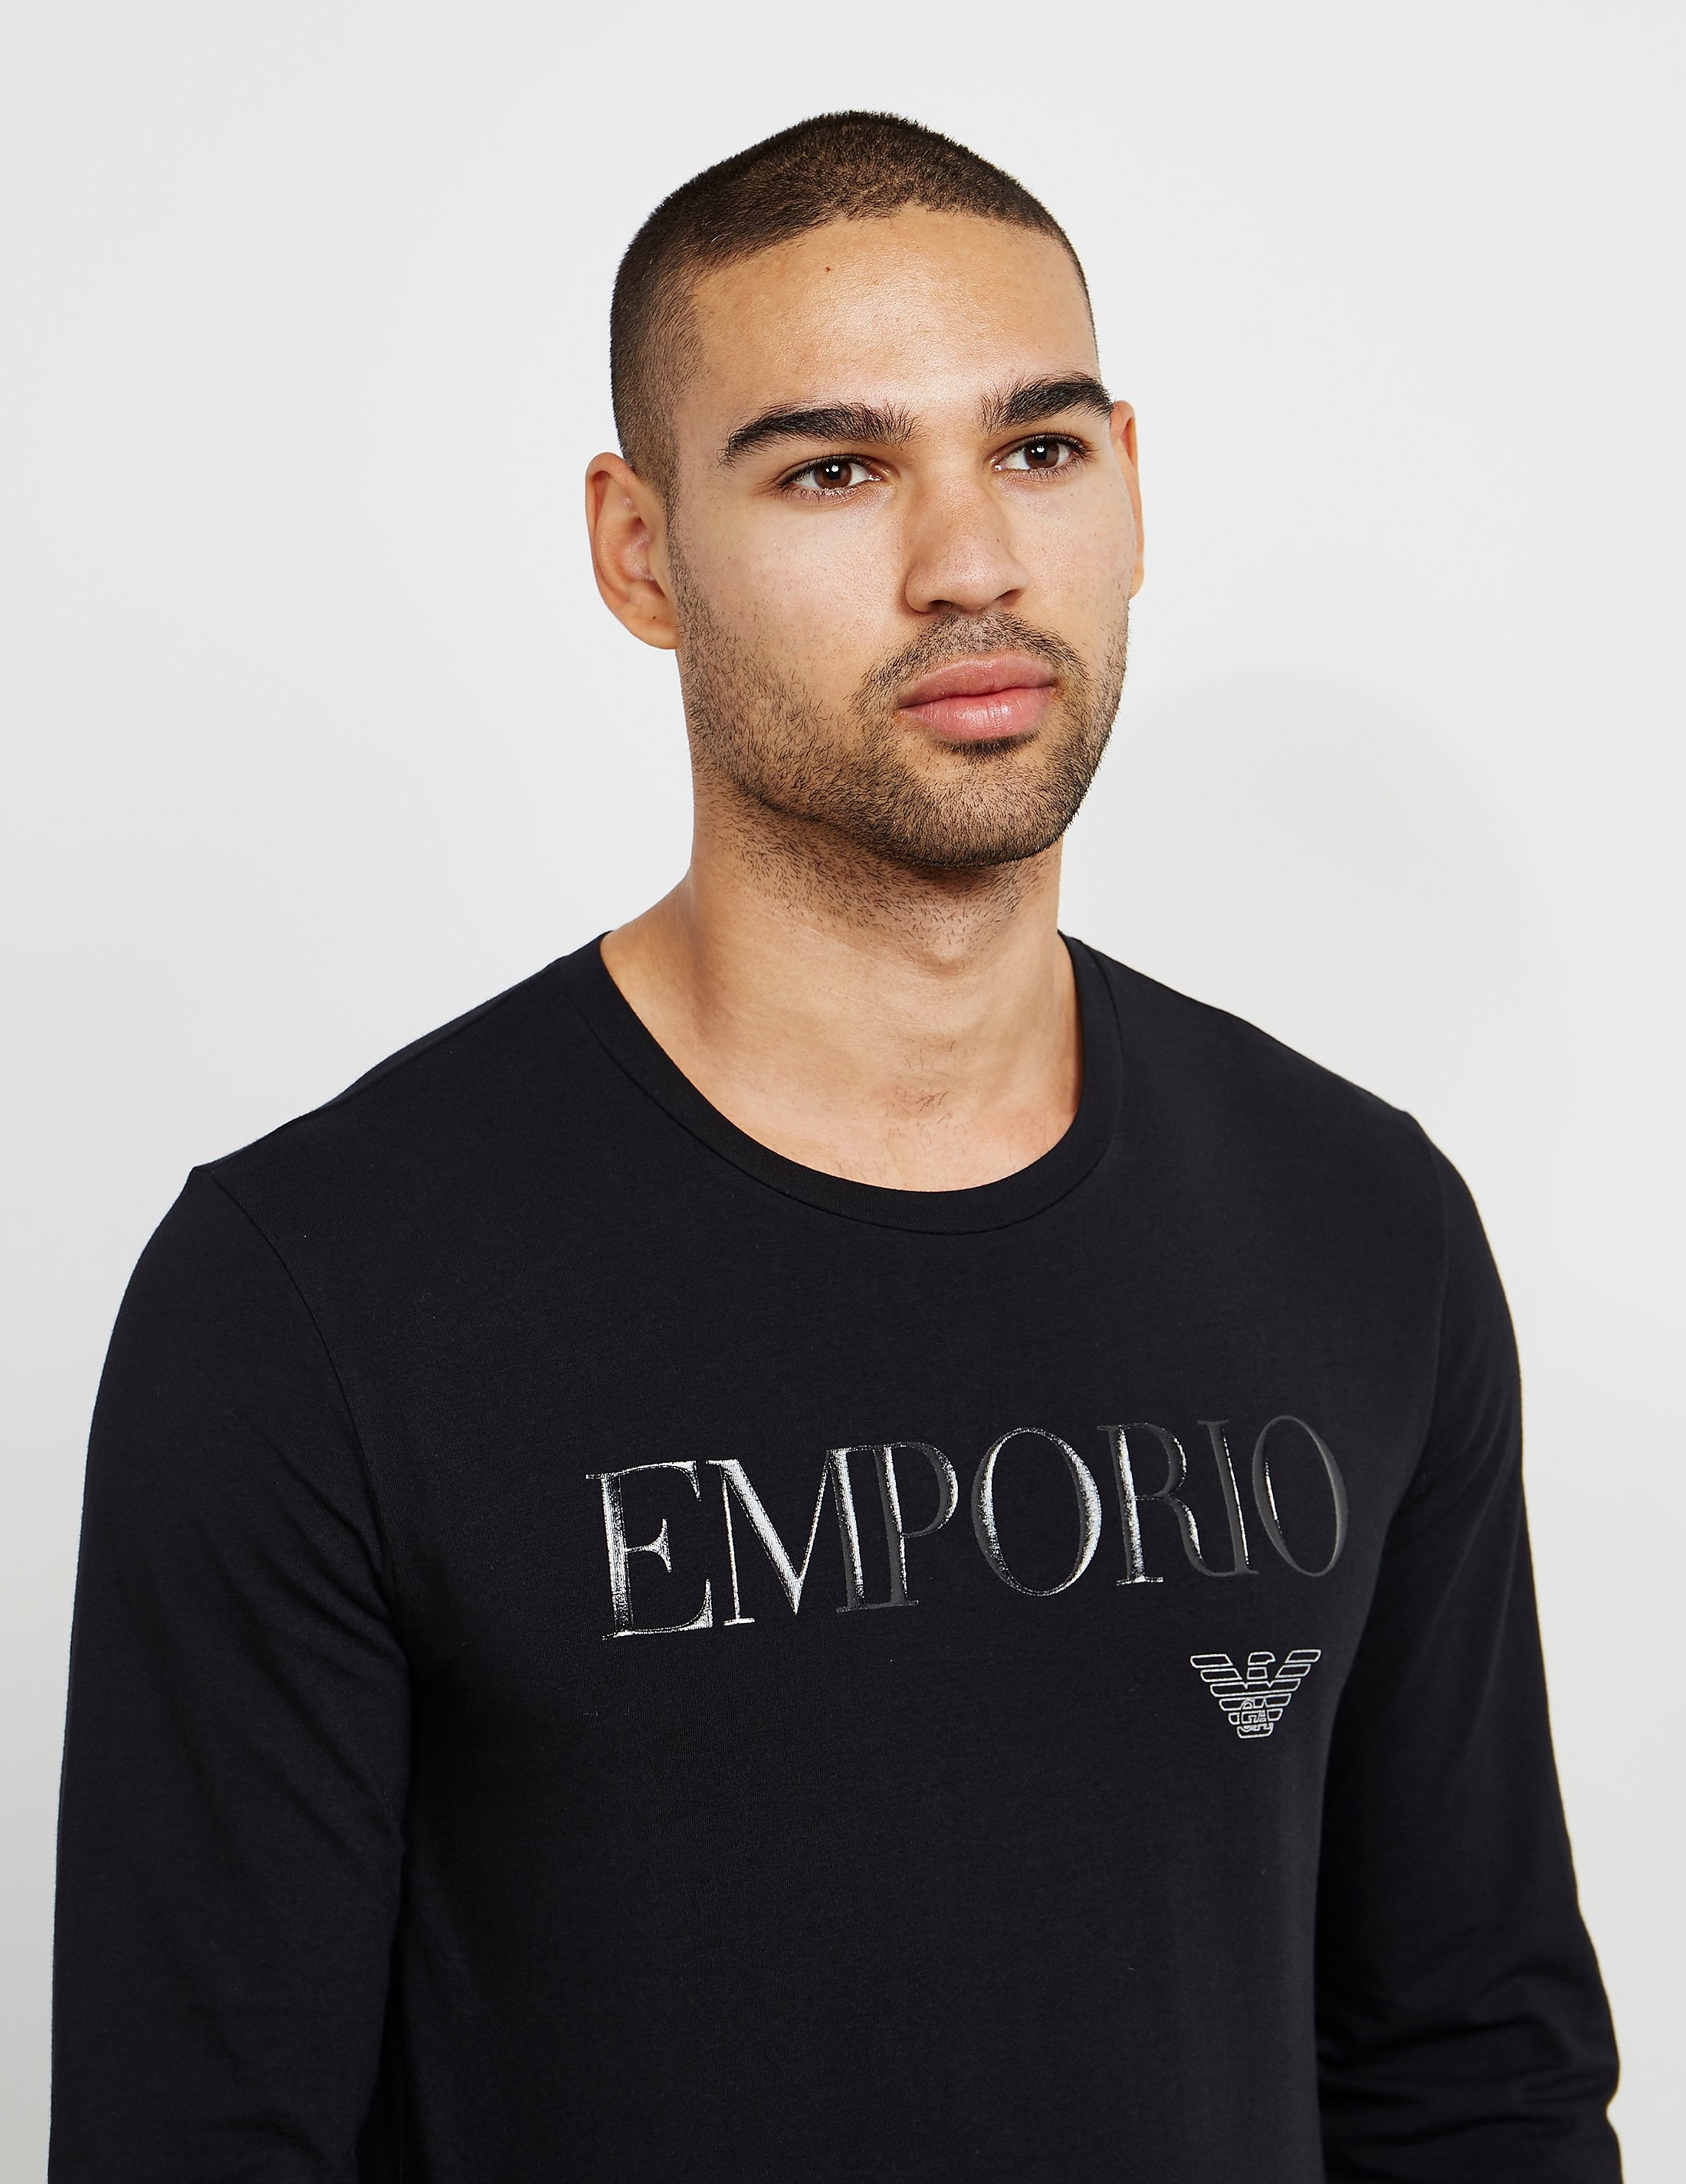 Emporio Armani Gel Print Long Sleeve T-Shirt